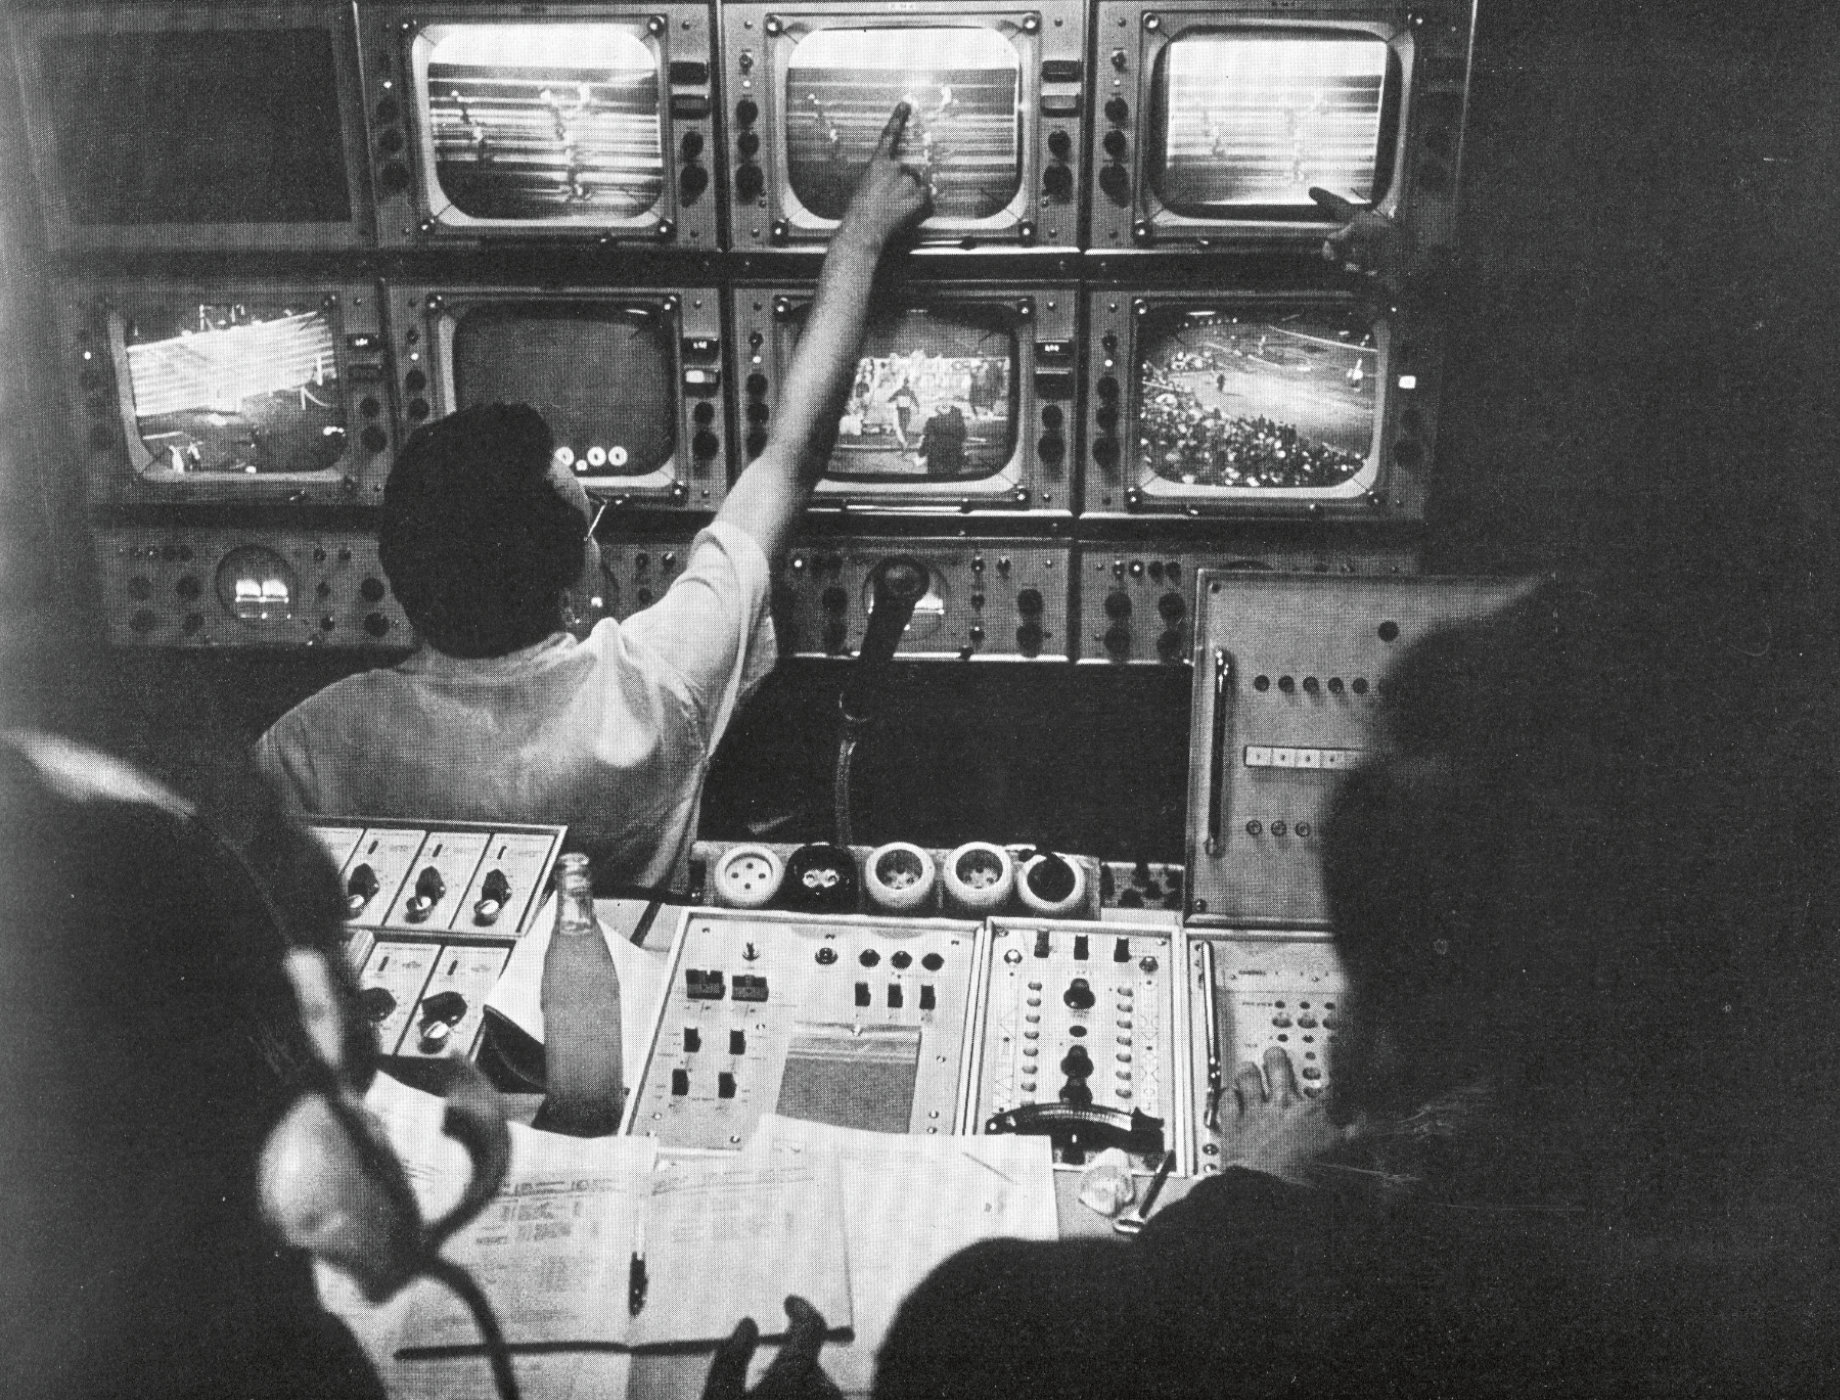 The Control Room during the 1964 Olympic Games in Innsbruck.